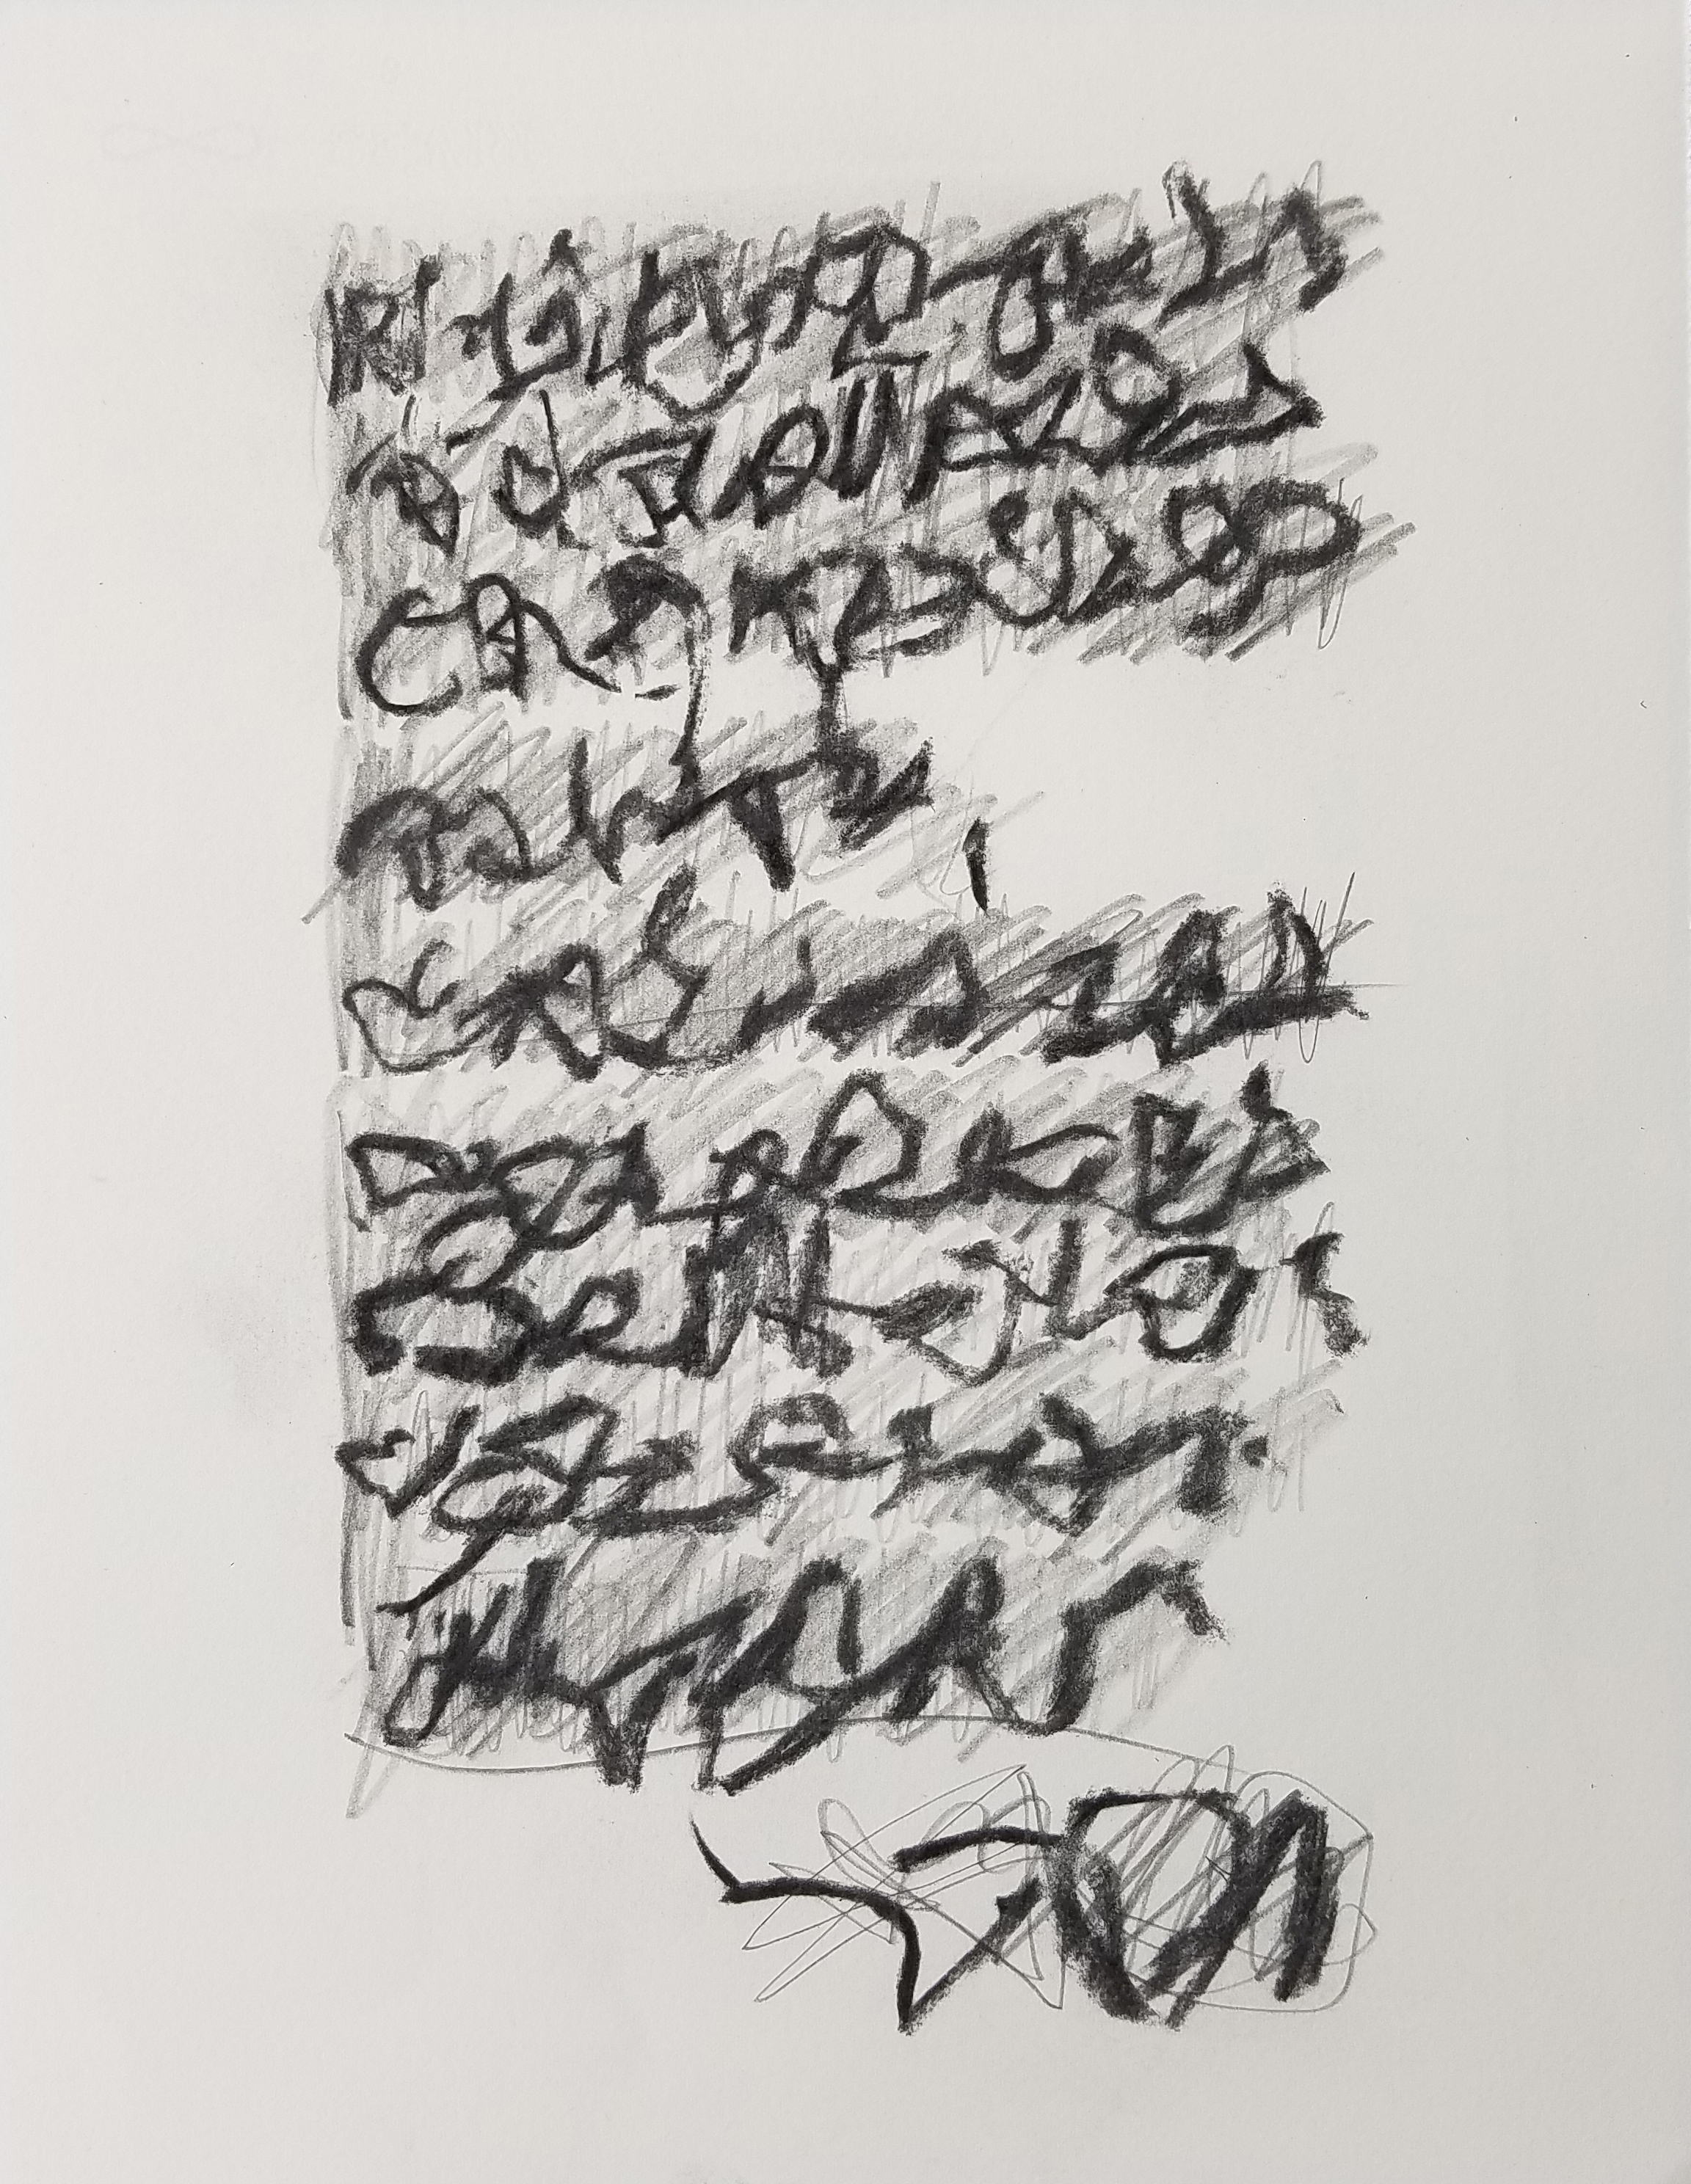 Letter to Andrew #18, Charcoal/pencil on paper